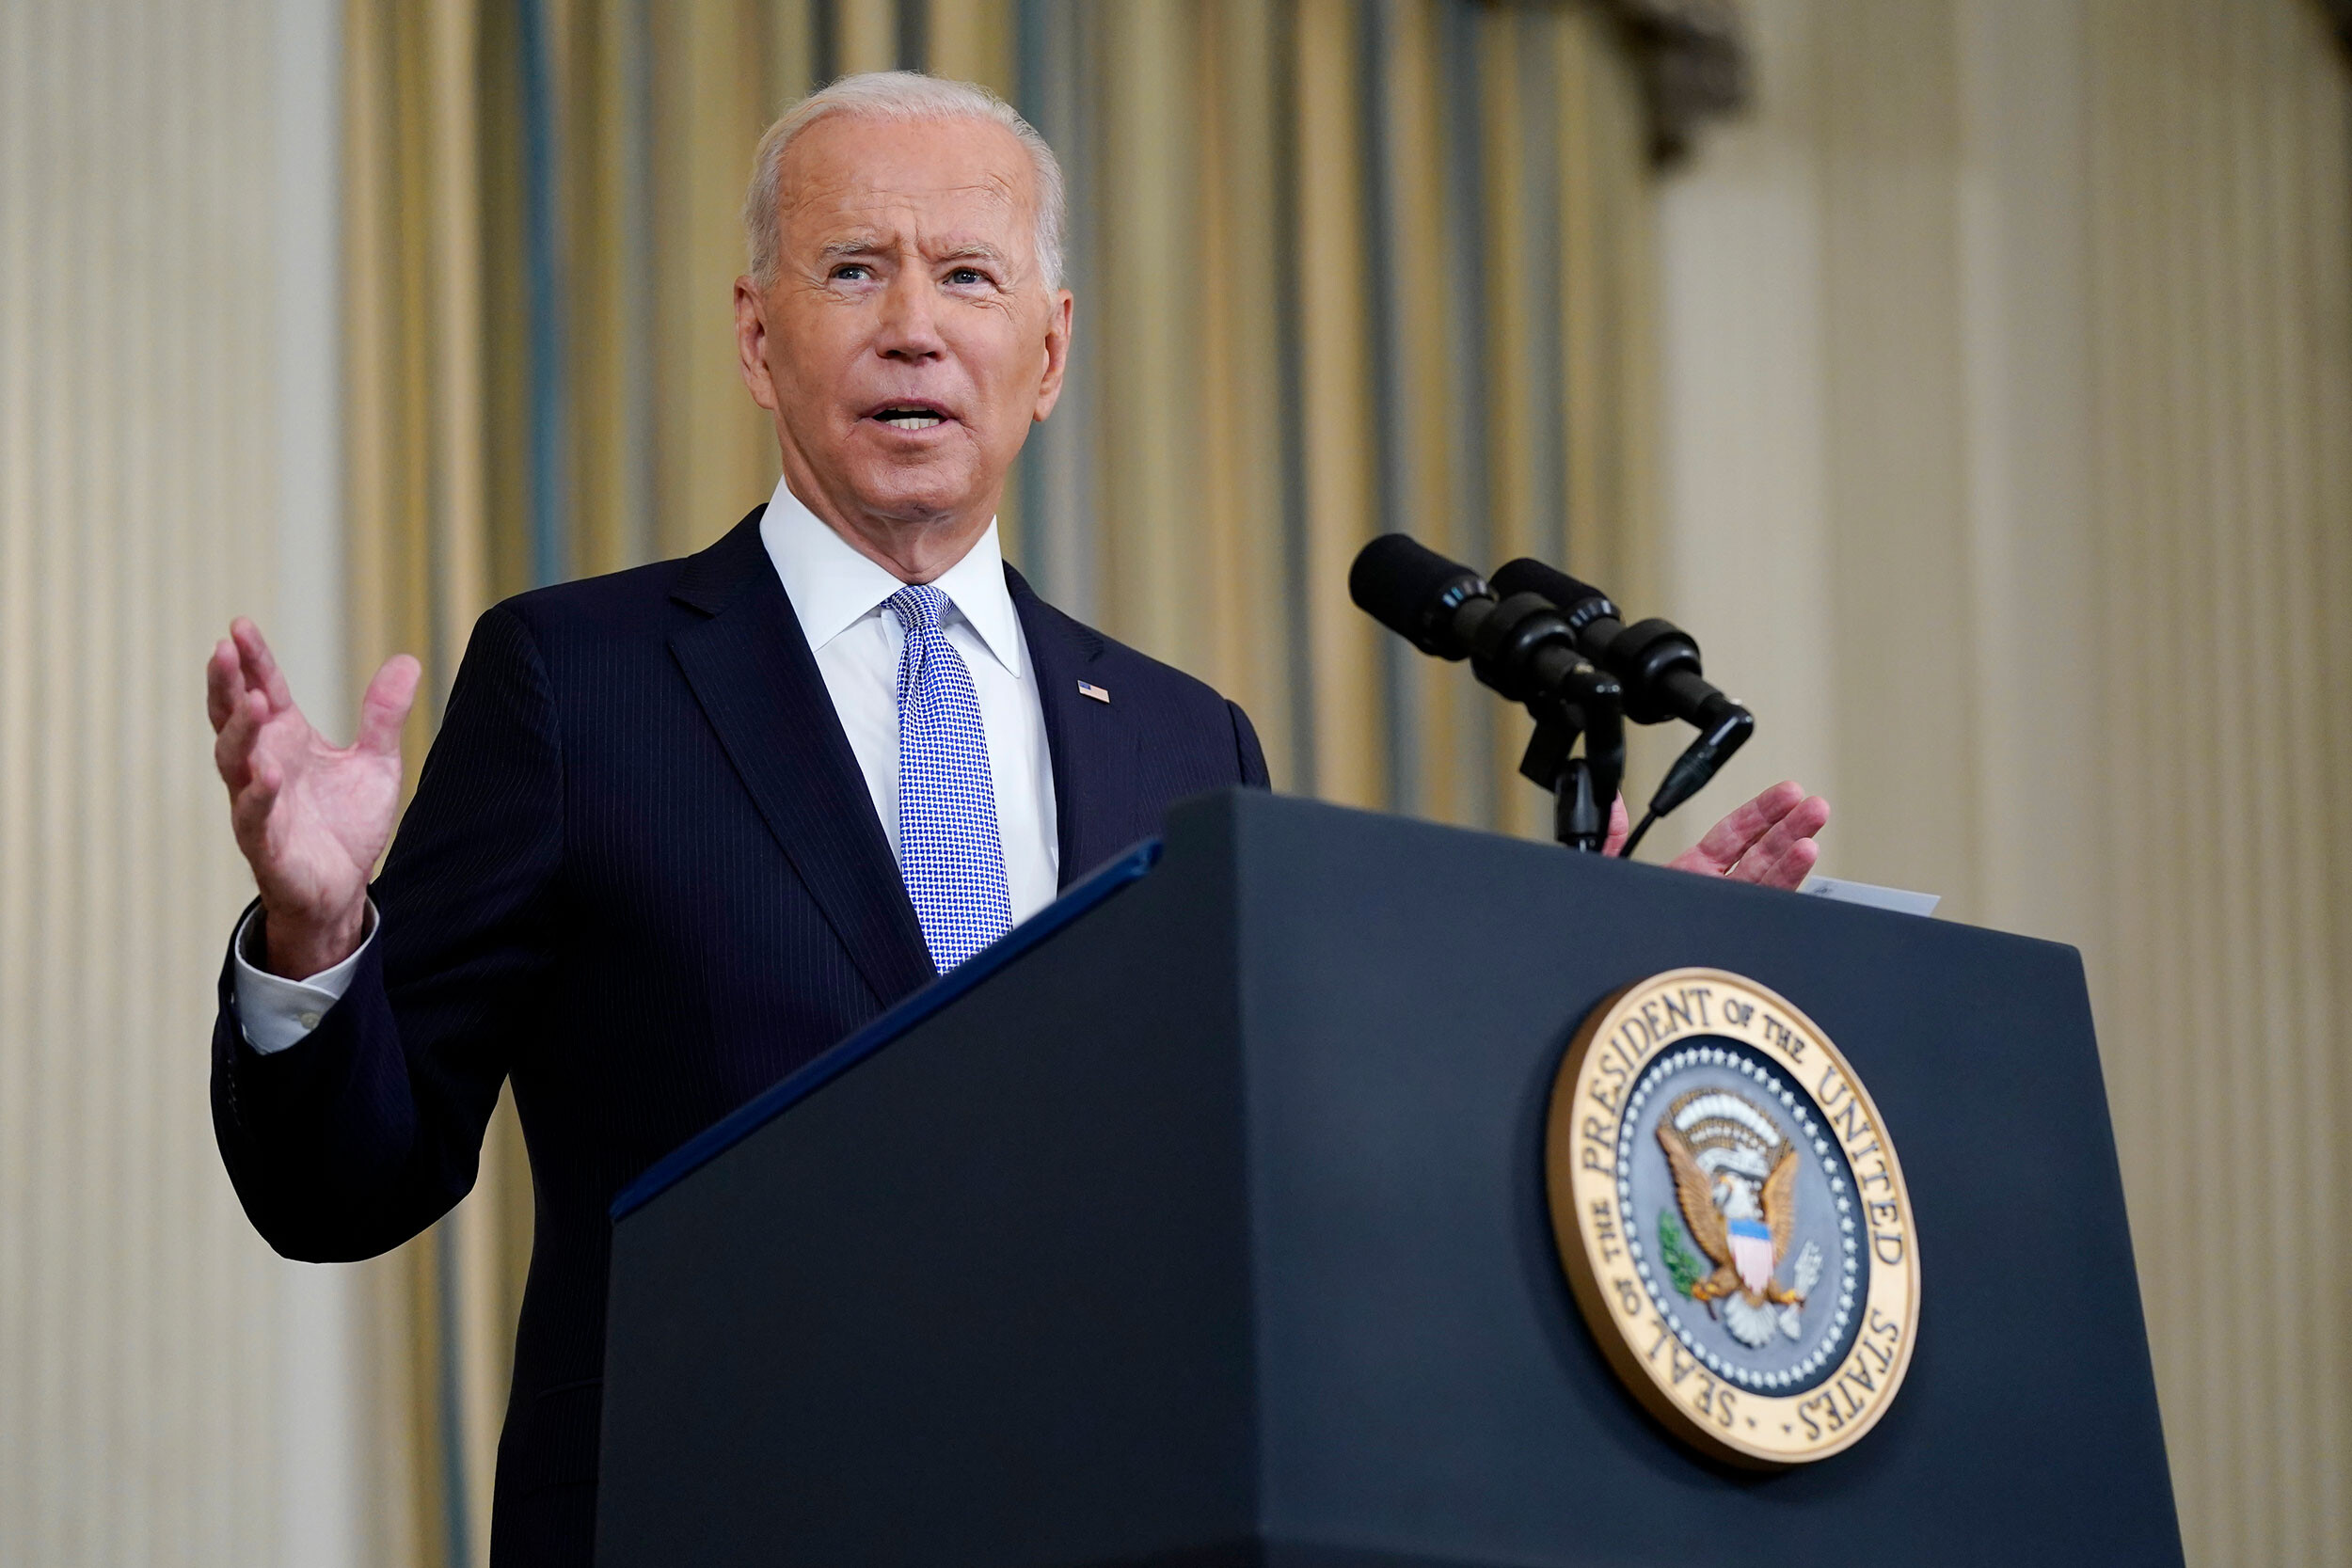 <i>Patrick Semansky/AP</i><br/>President Joe Biden speaks about the COVID-19 response and vaccinations in the State Dining Room of the White House